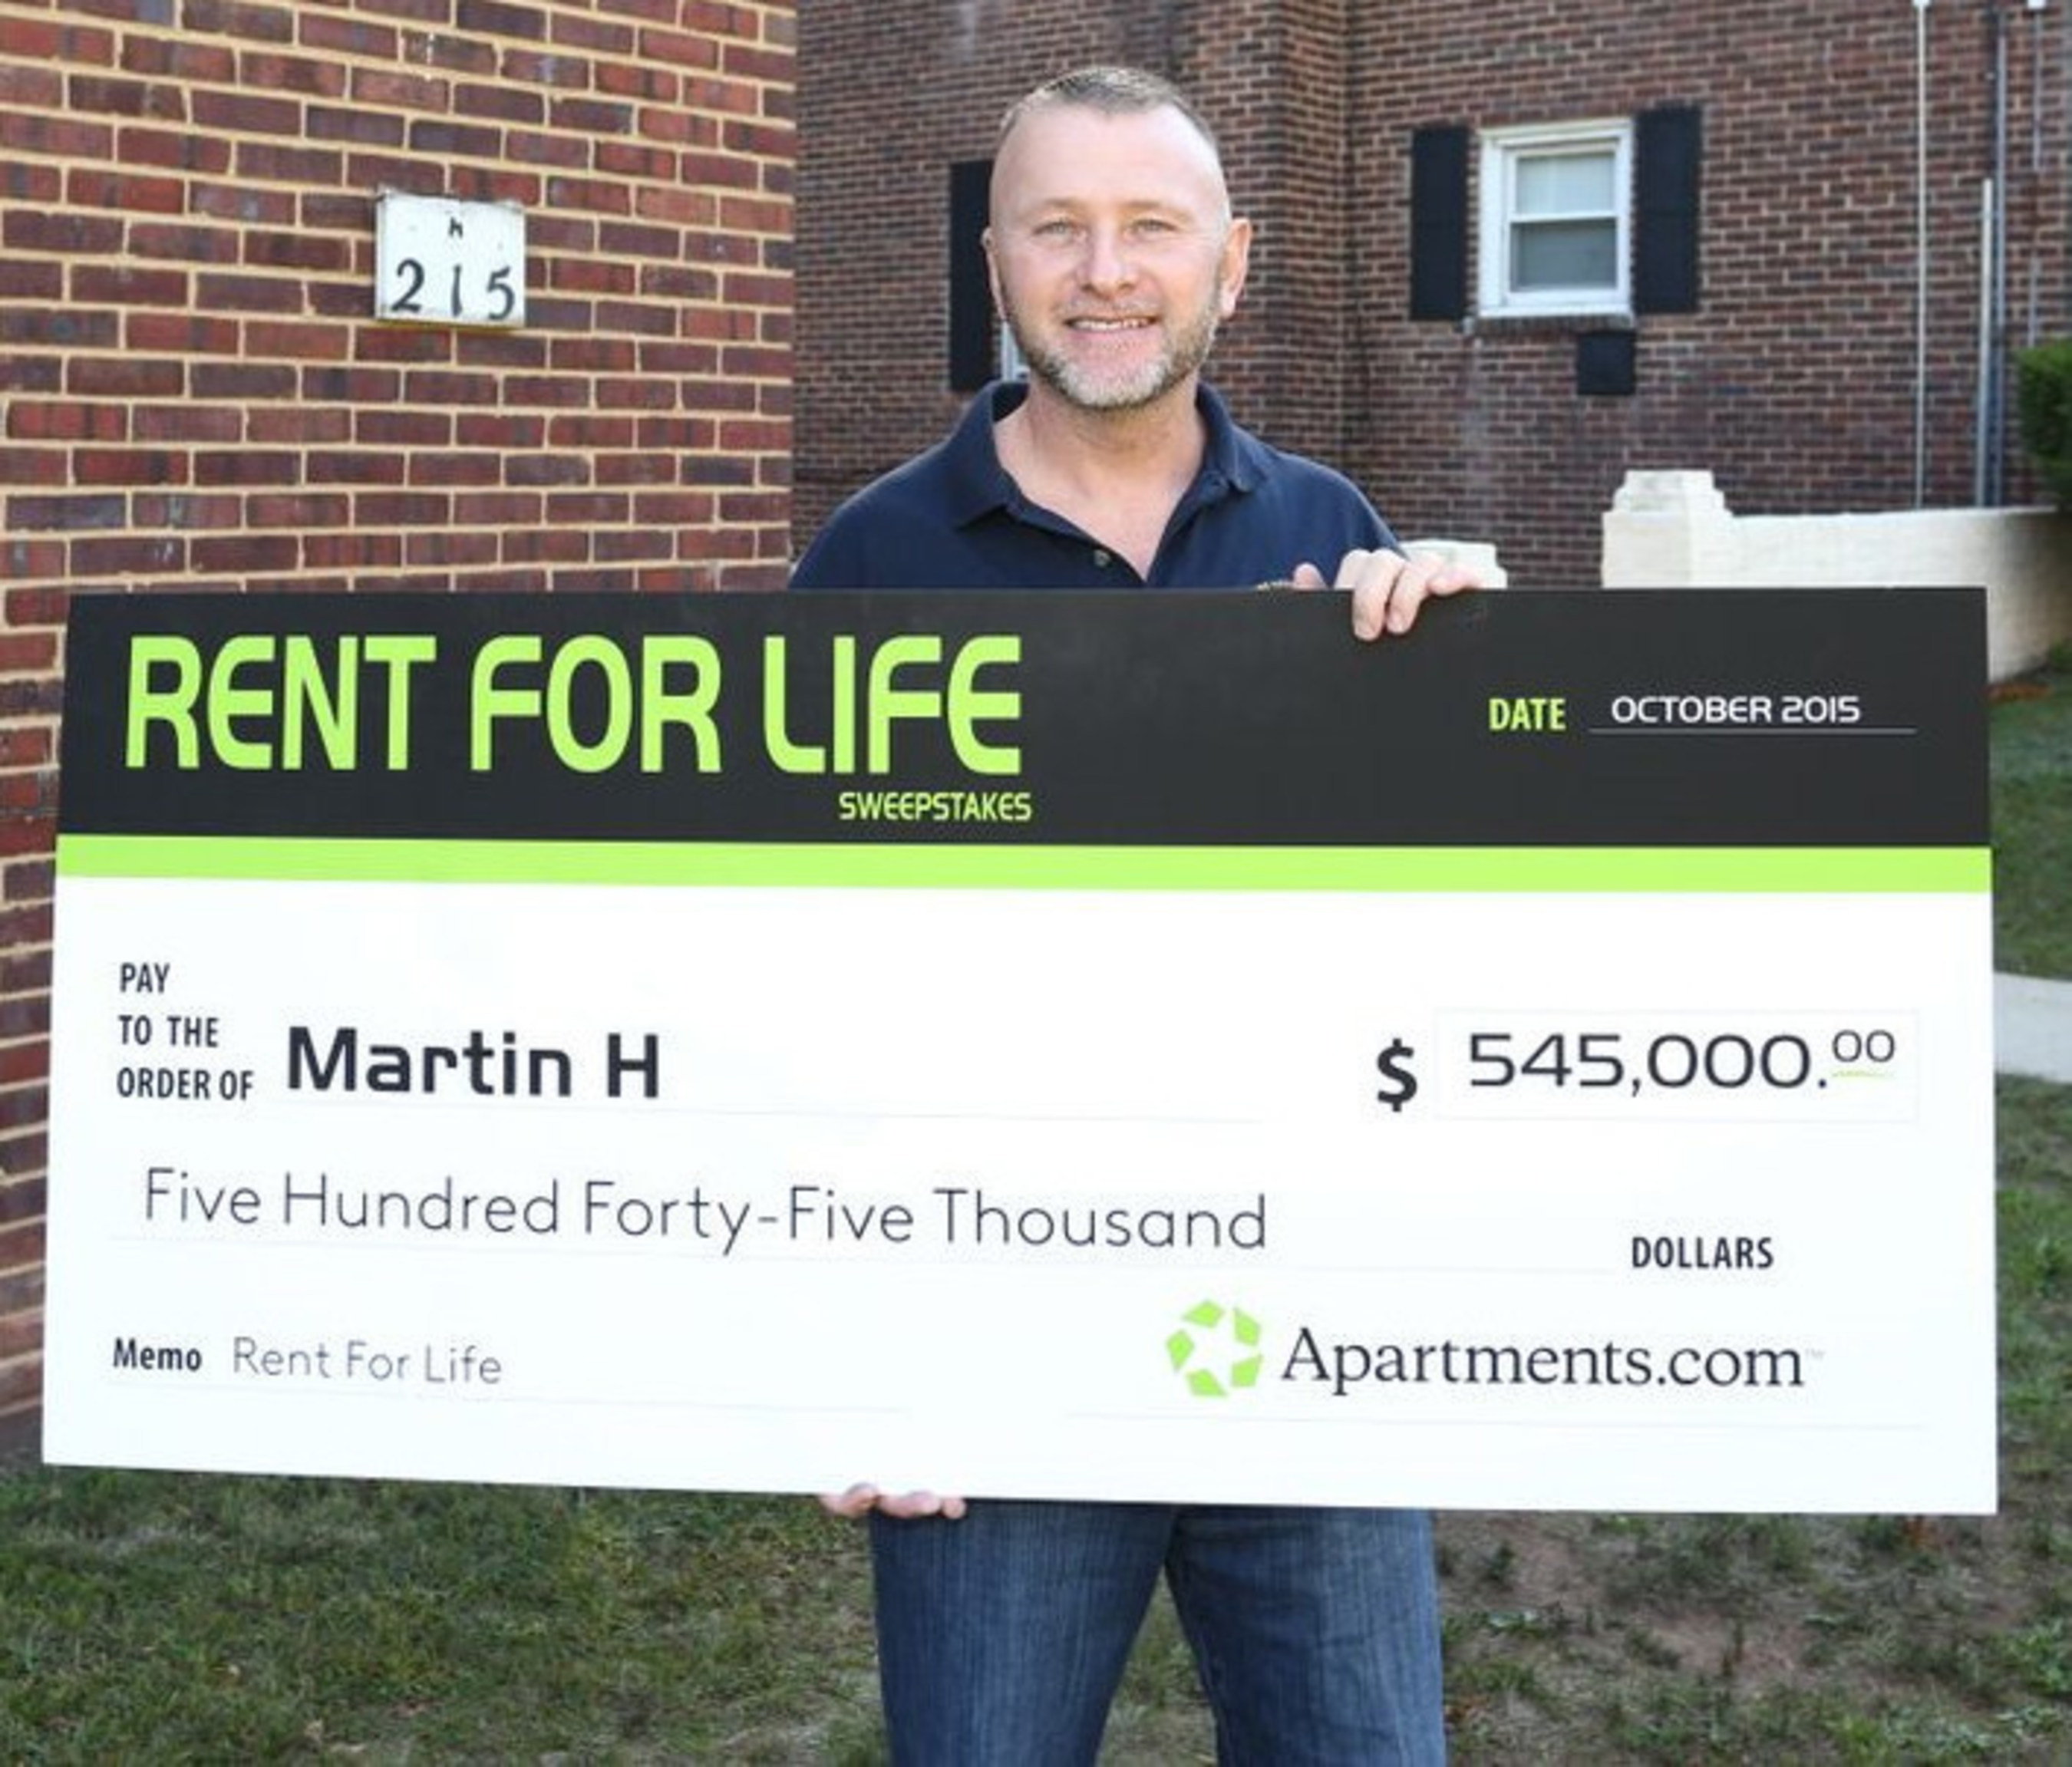 Renter's Life Transformed, as Apartments.com Names Him 'Free Rent for Life' Sweepstakes Winner